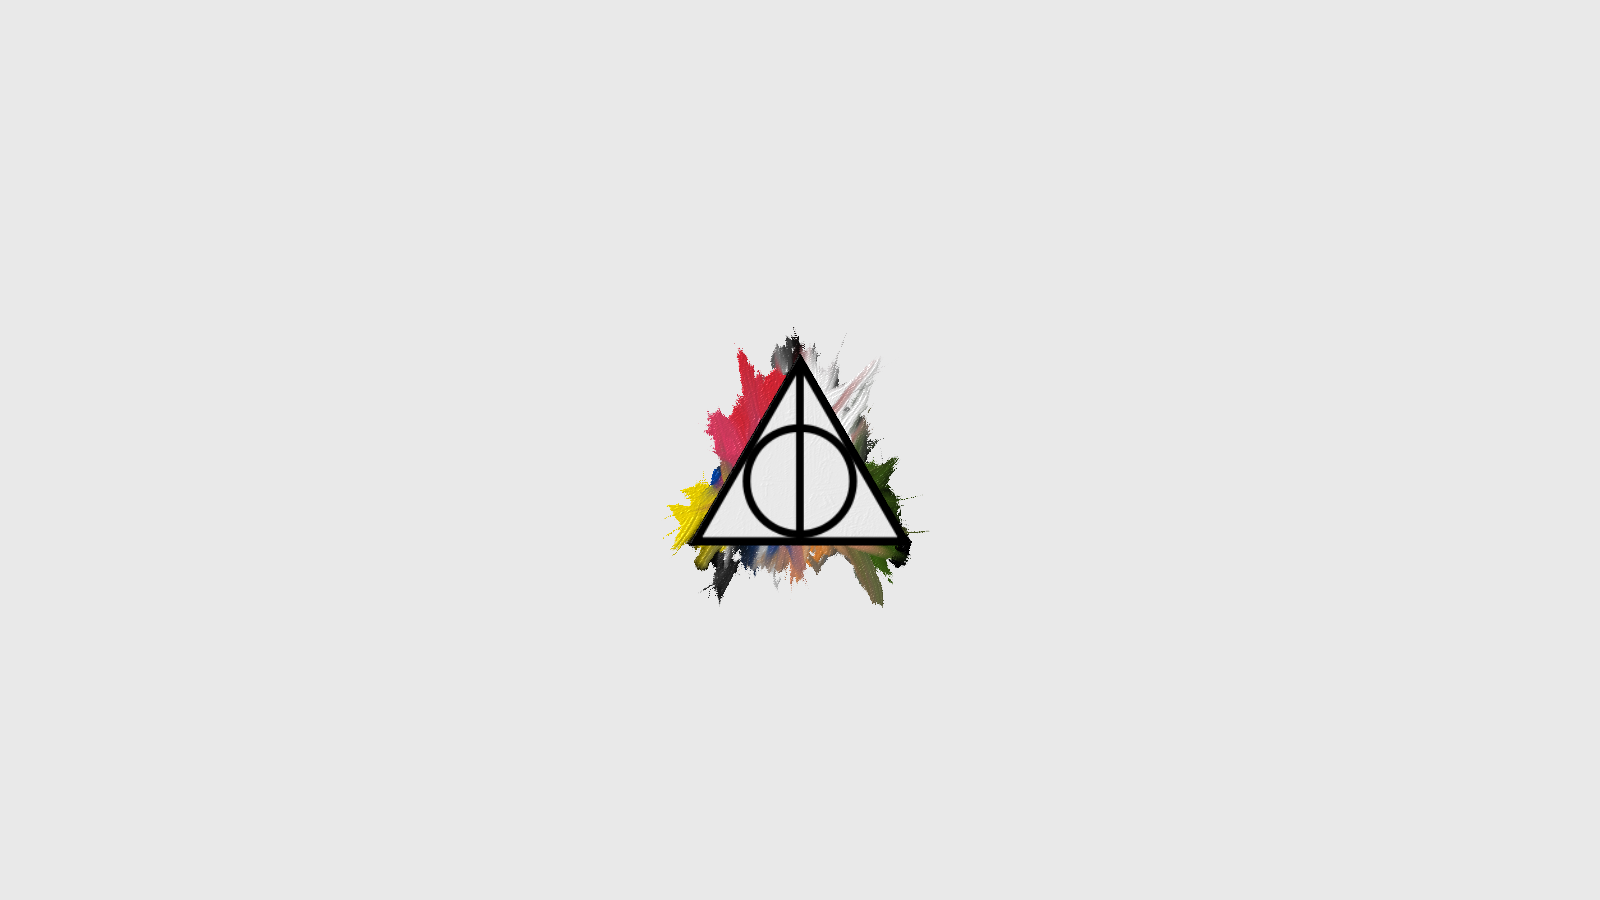 Harry Potter And The Deathly Hallows By CiroGiso On